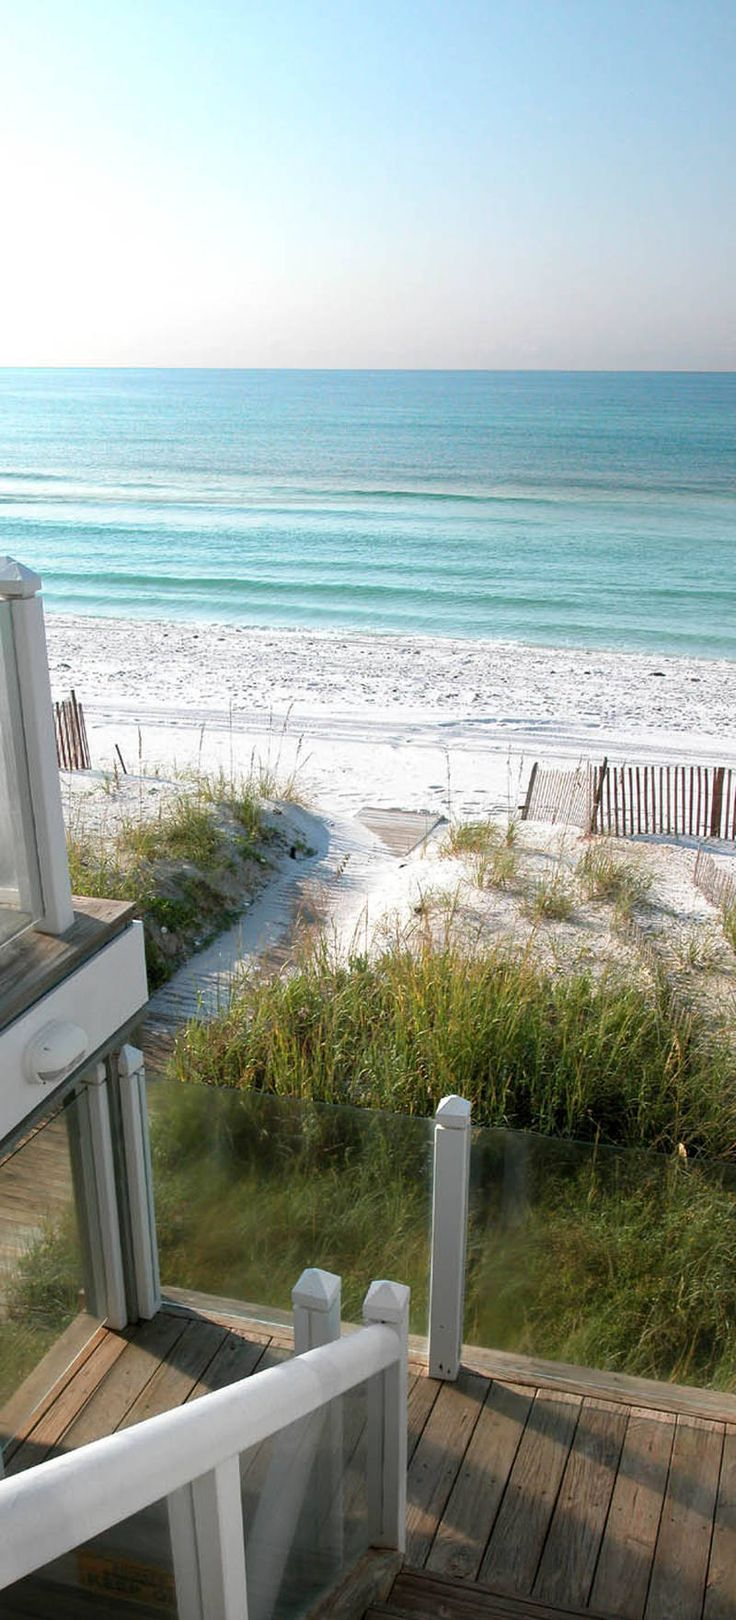 To the beach, aqua waters, white sand, a drink in hand and a good book. My happy place